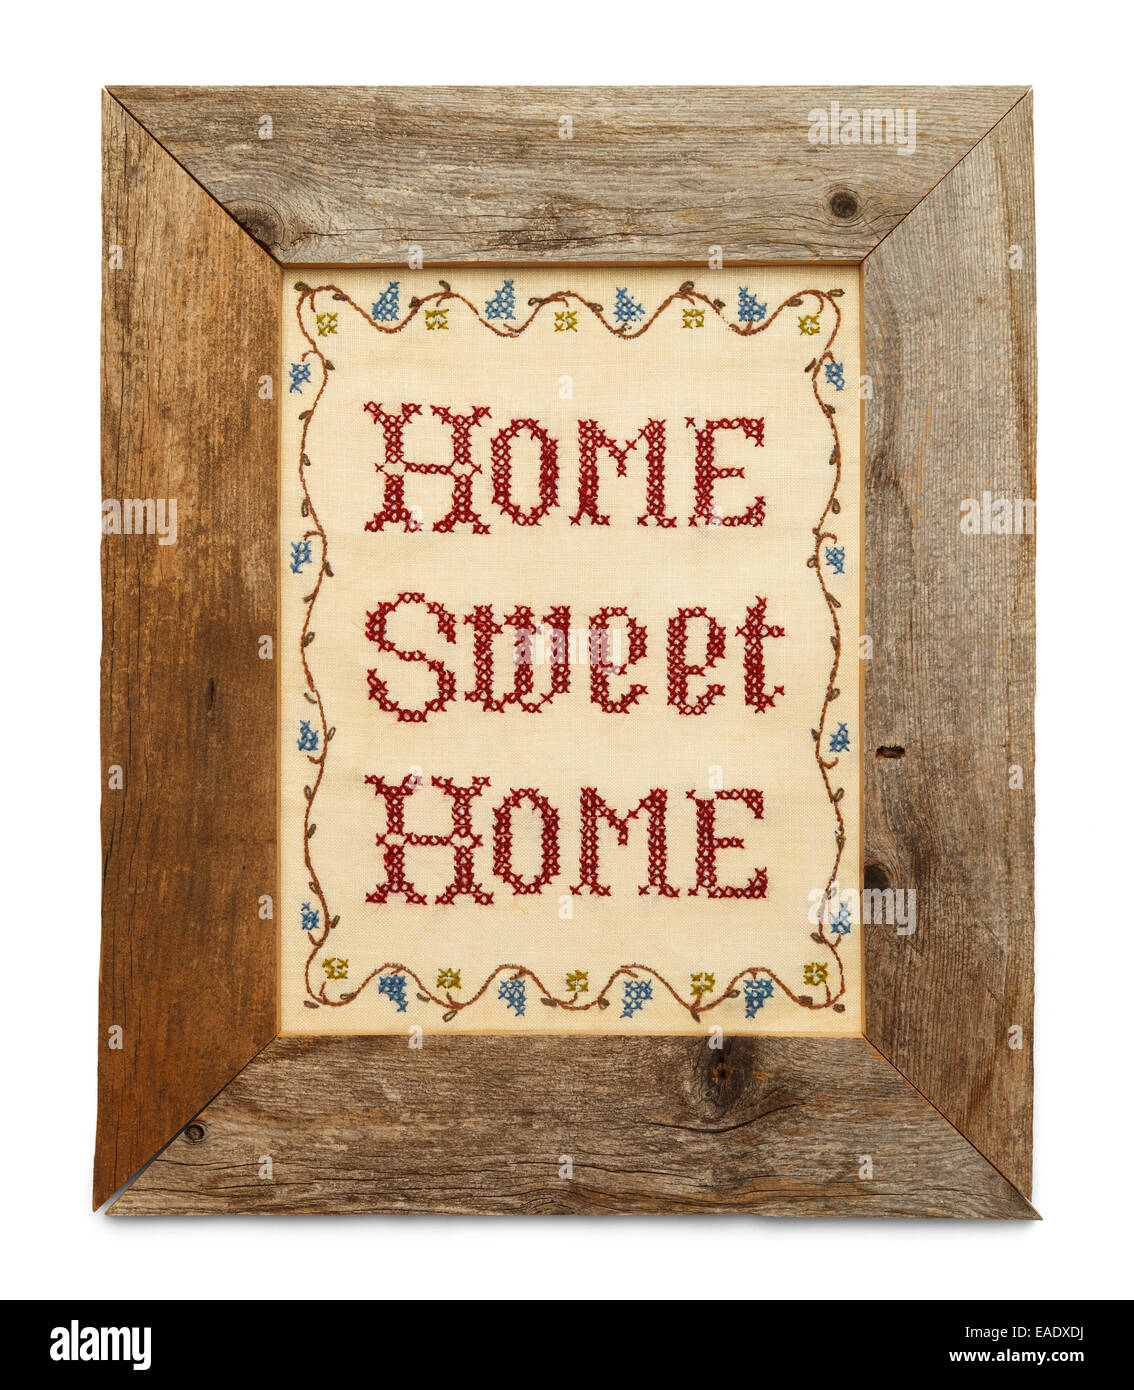 Home Sweet Home Cross Stitch in Rustic Wood Frame Isolated on White Background. - Stock Image